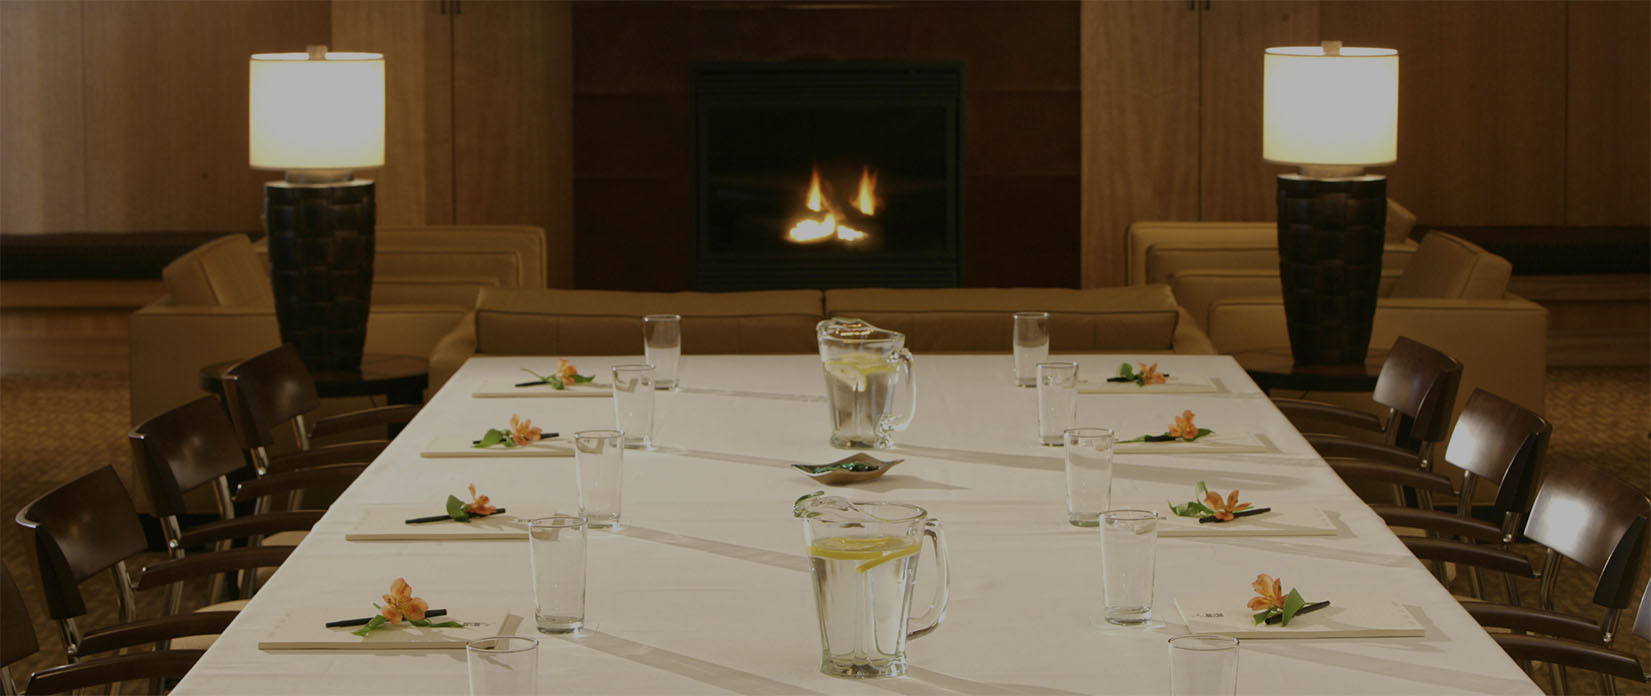 Meeting Table by fireplace